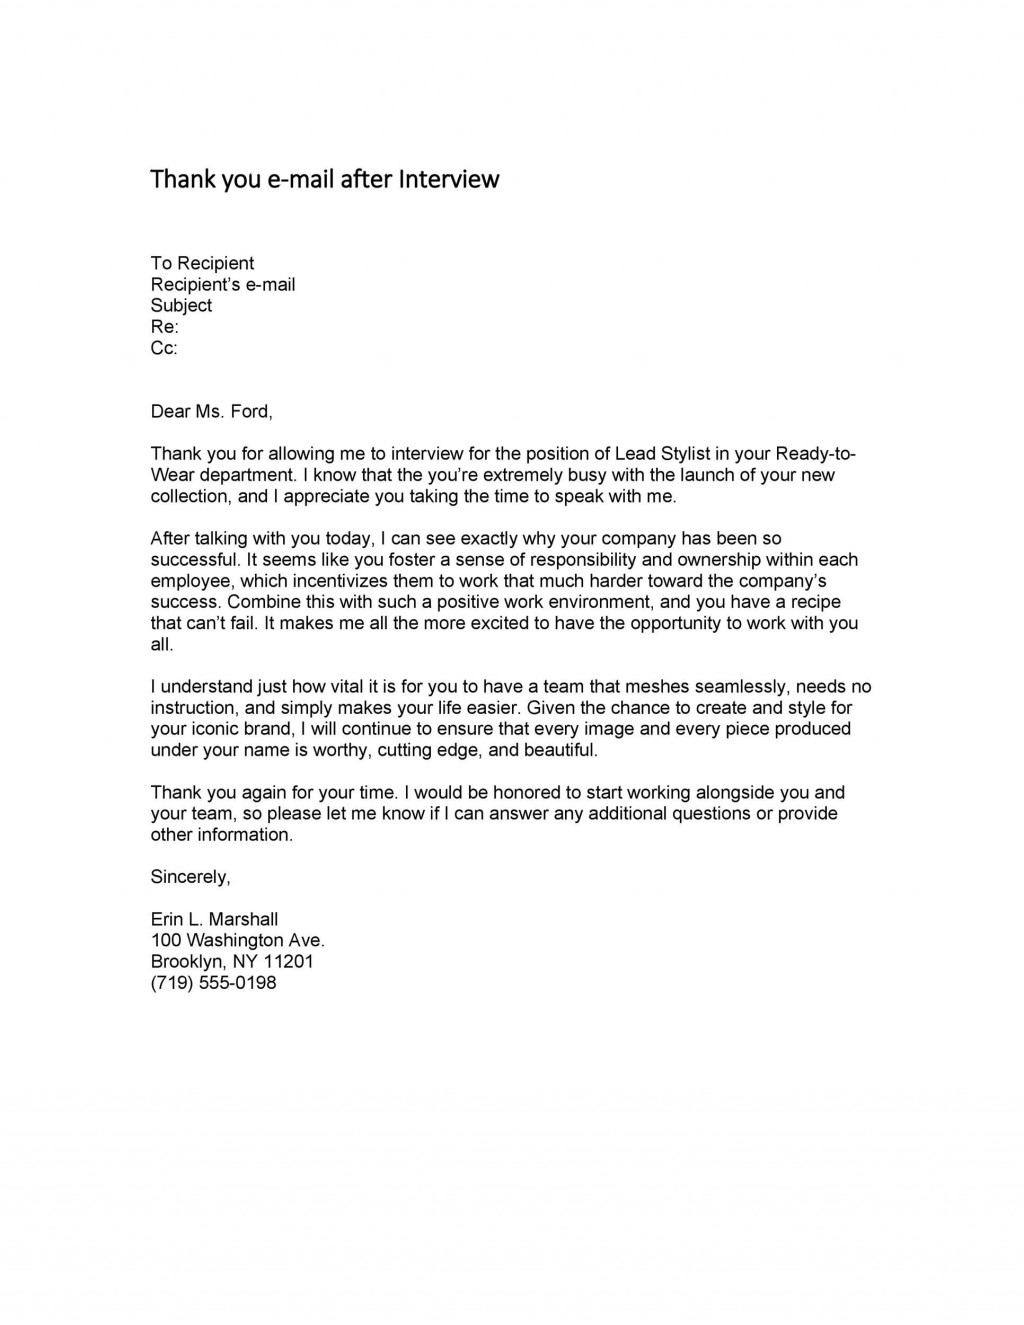 006 Staggering Thank You Note Template Interview Sample  Letter After Example Job ResidencyLarge